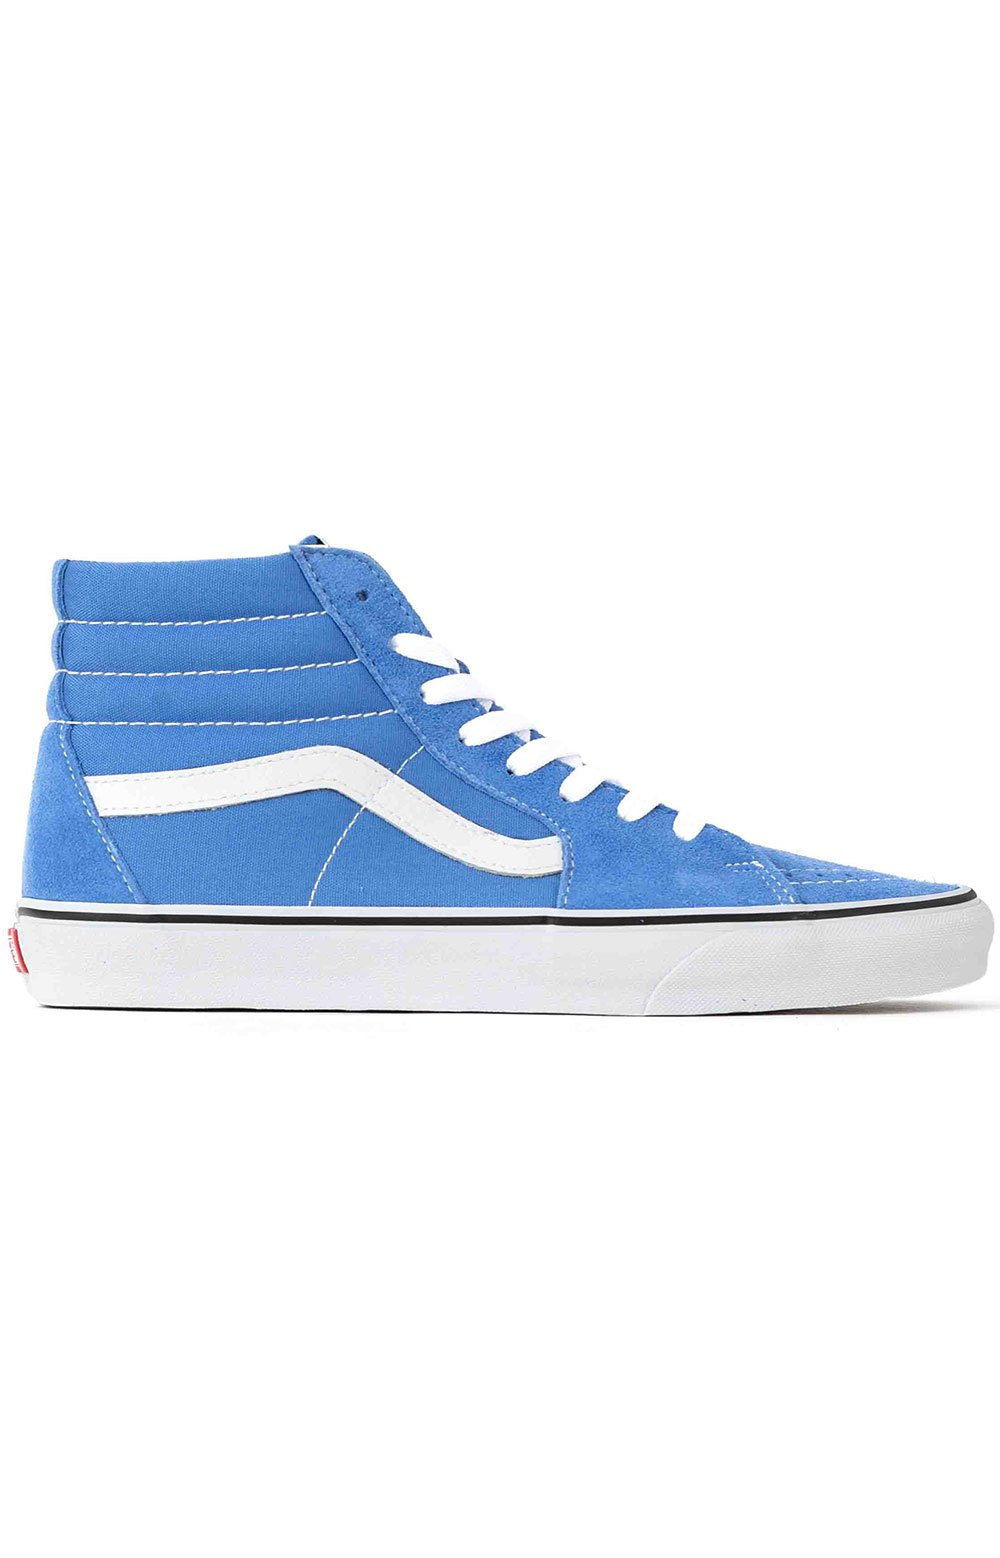 (U3C1UJ) Sk8-Hi Shoes - Nebulas Blue  1